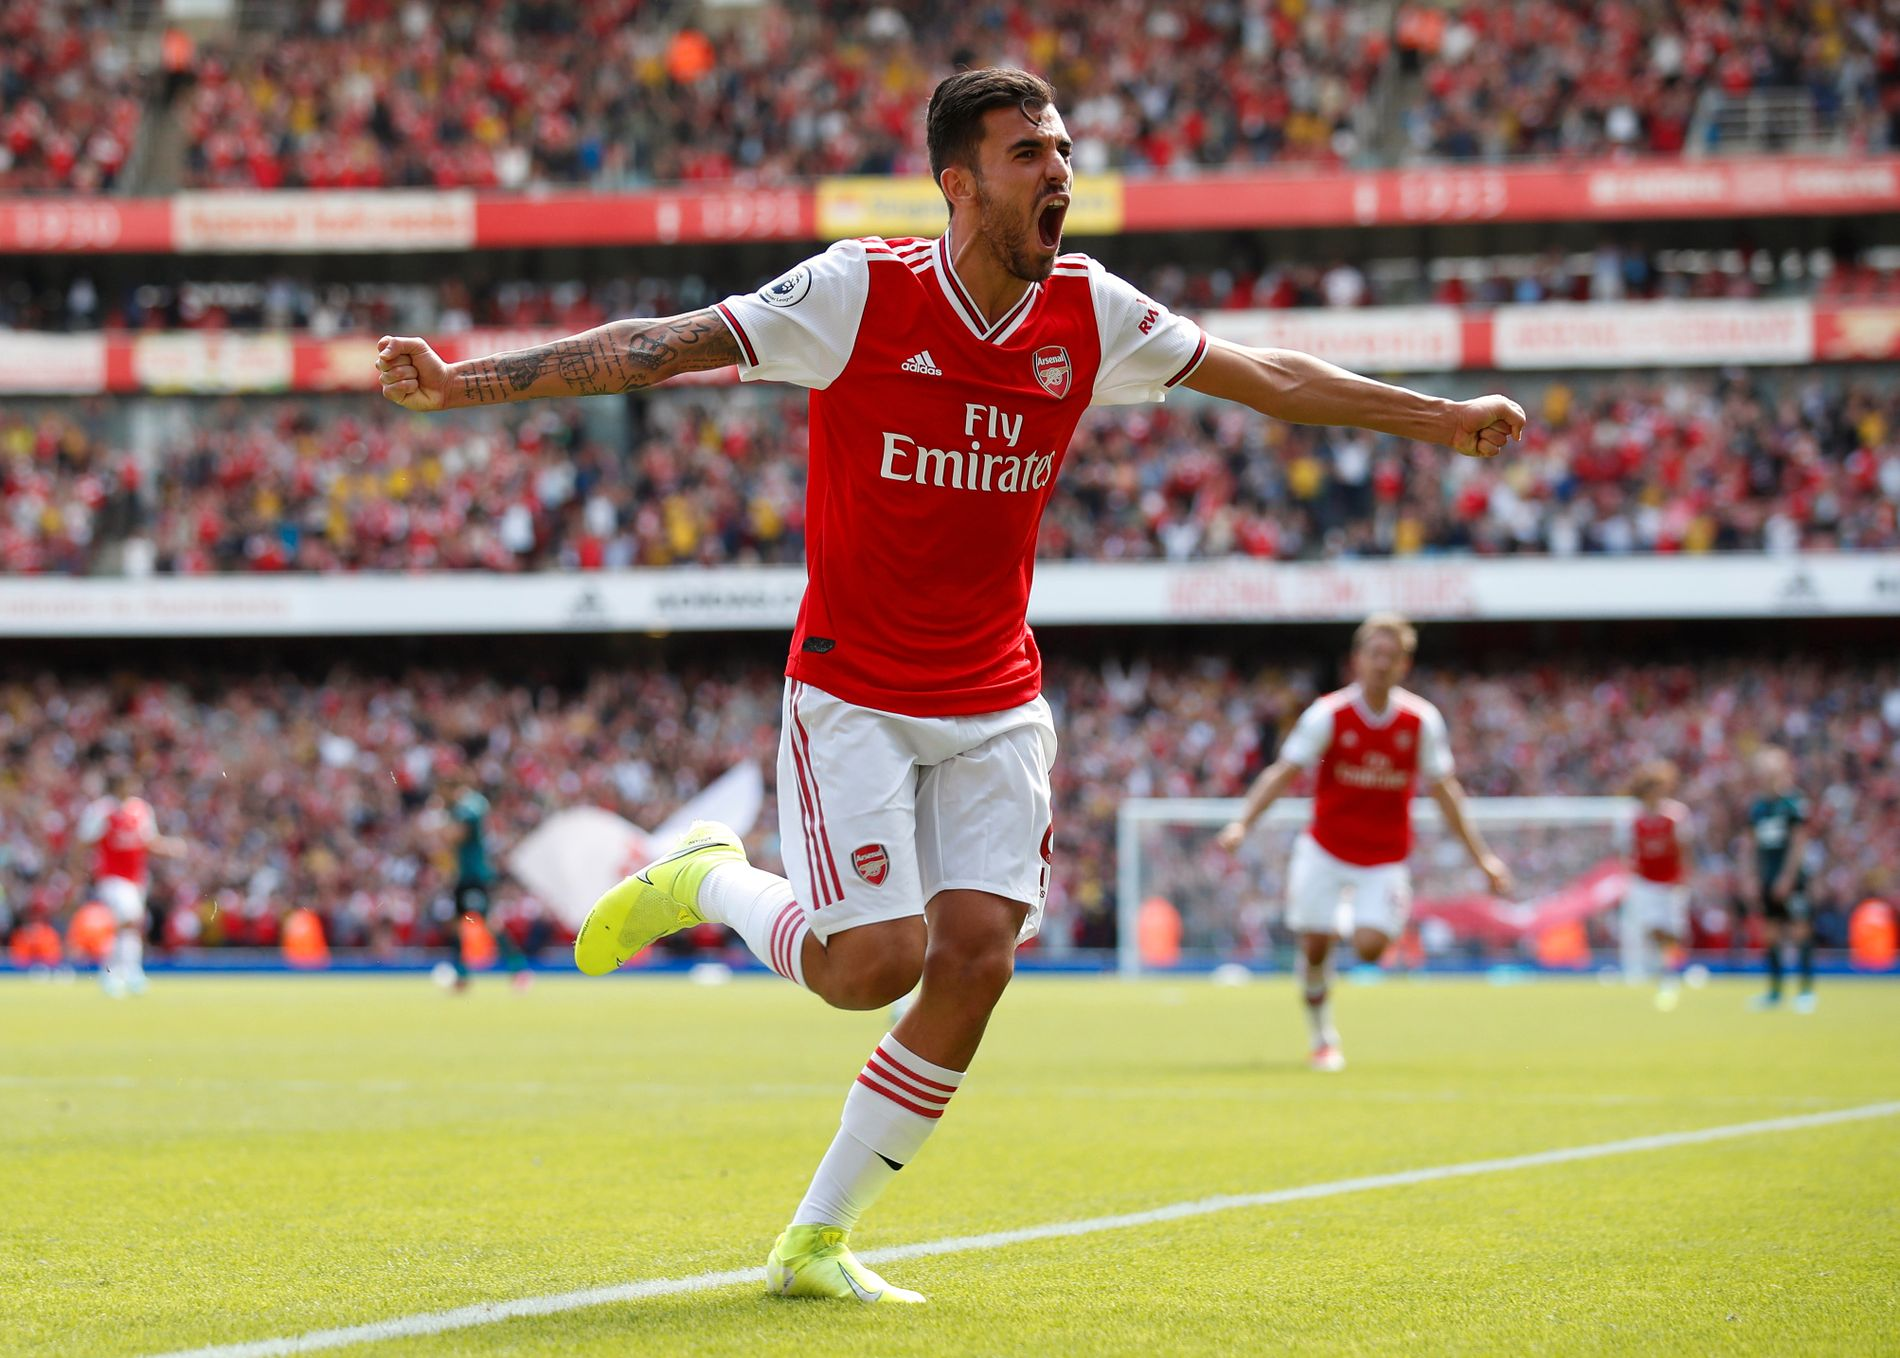 THE NEW WHOLE: Danny Chebalo is delighted with Arsenal's 2-1 result, which he was second to last.